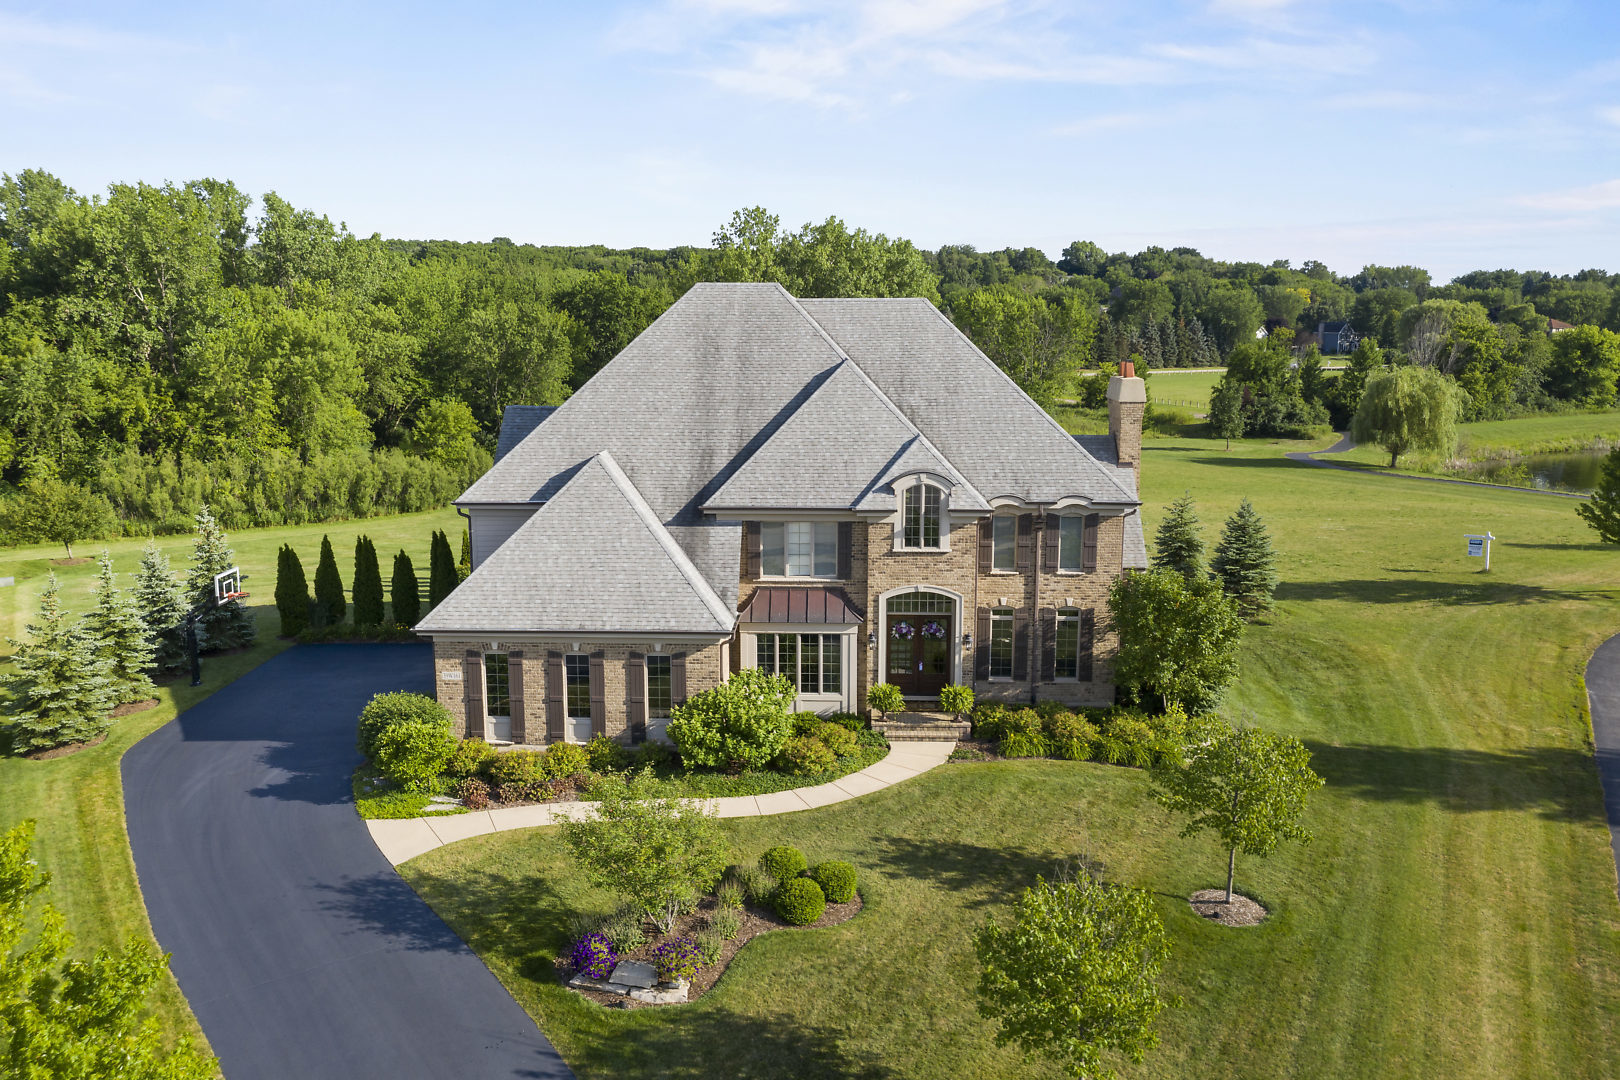 39W161  Long Meadow,  St. Charles, Illinois